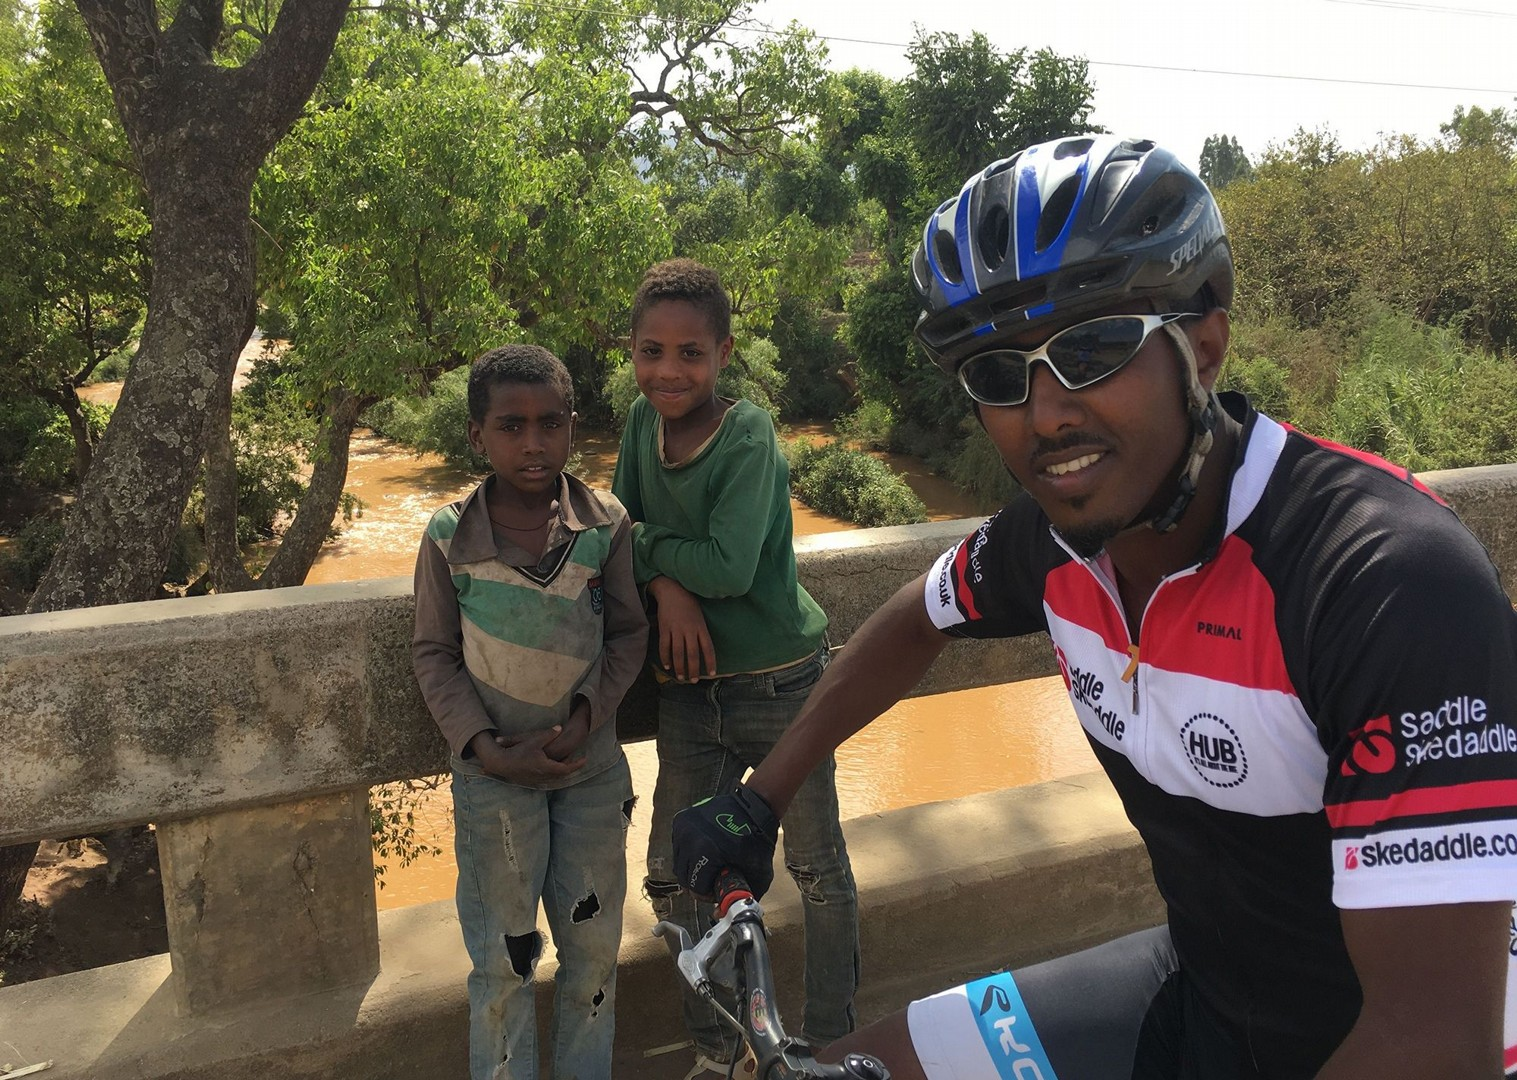 _Holiday.1028.25272.jpg - NEW! Ethiopia - Enchanting Ethiopia - Cycling Adventures